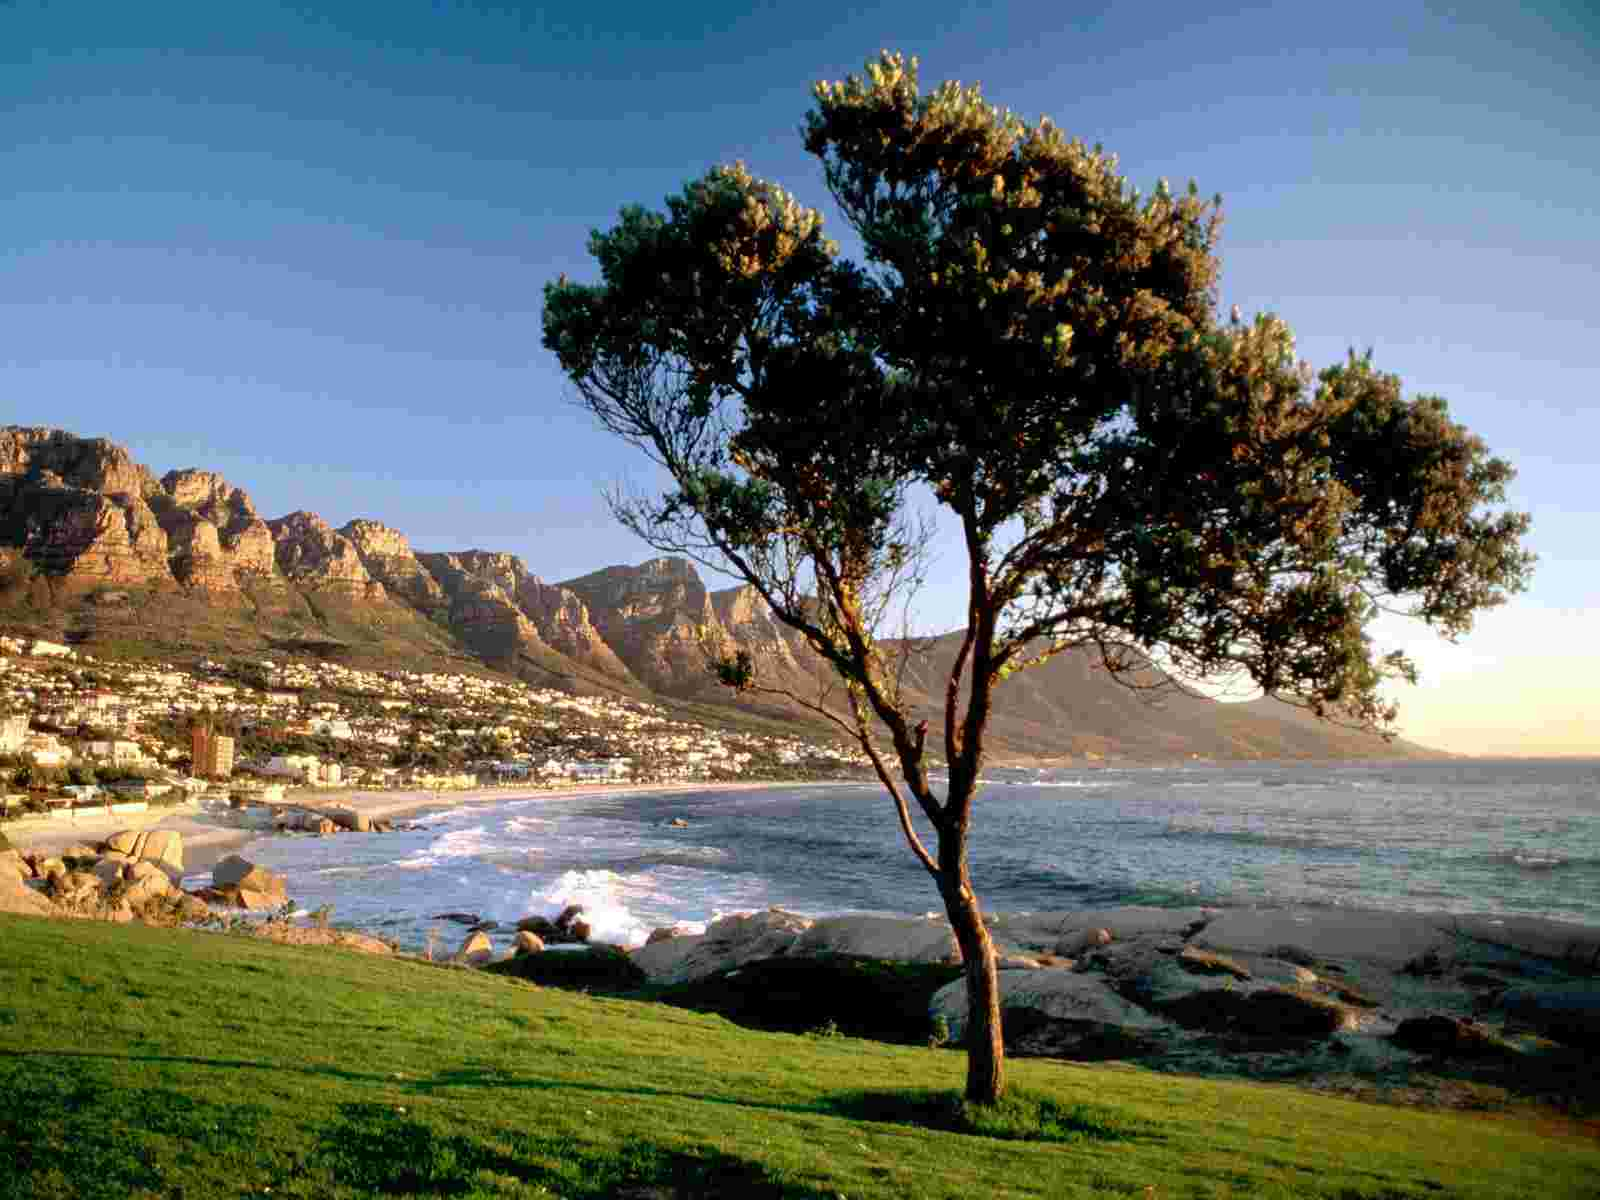 cape town kapstadt wallpaper hd sfondi desktop cape town 1600x1200